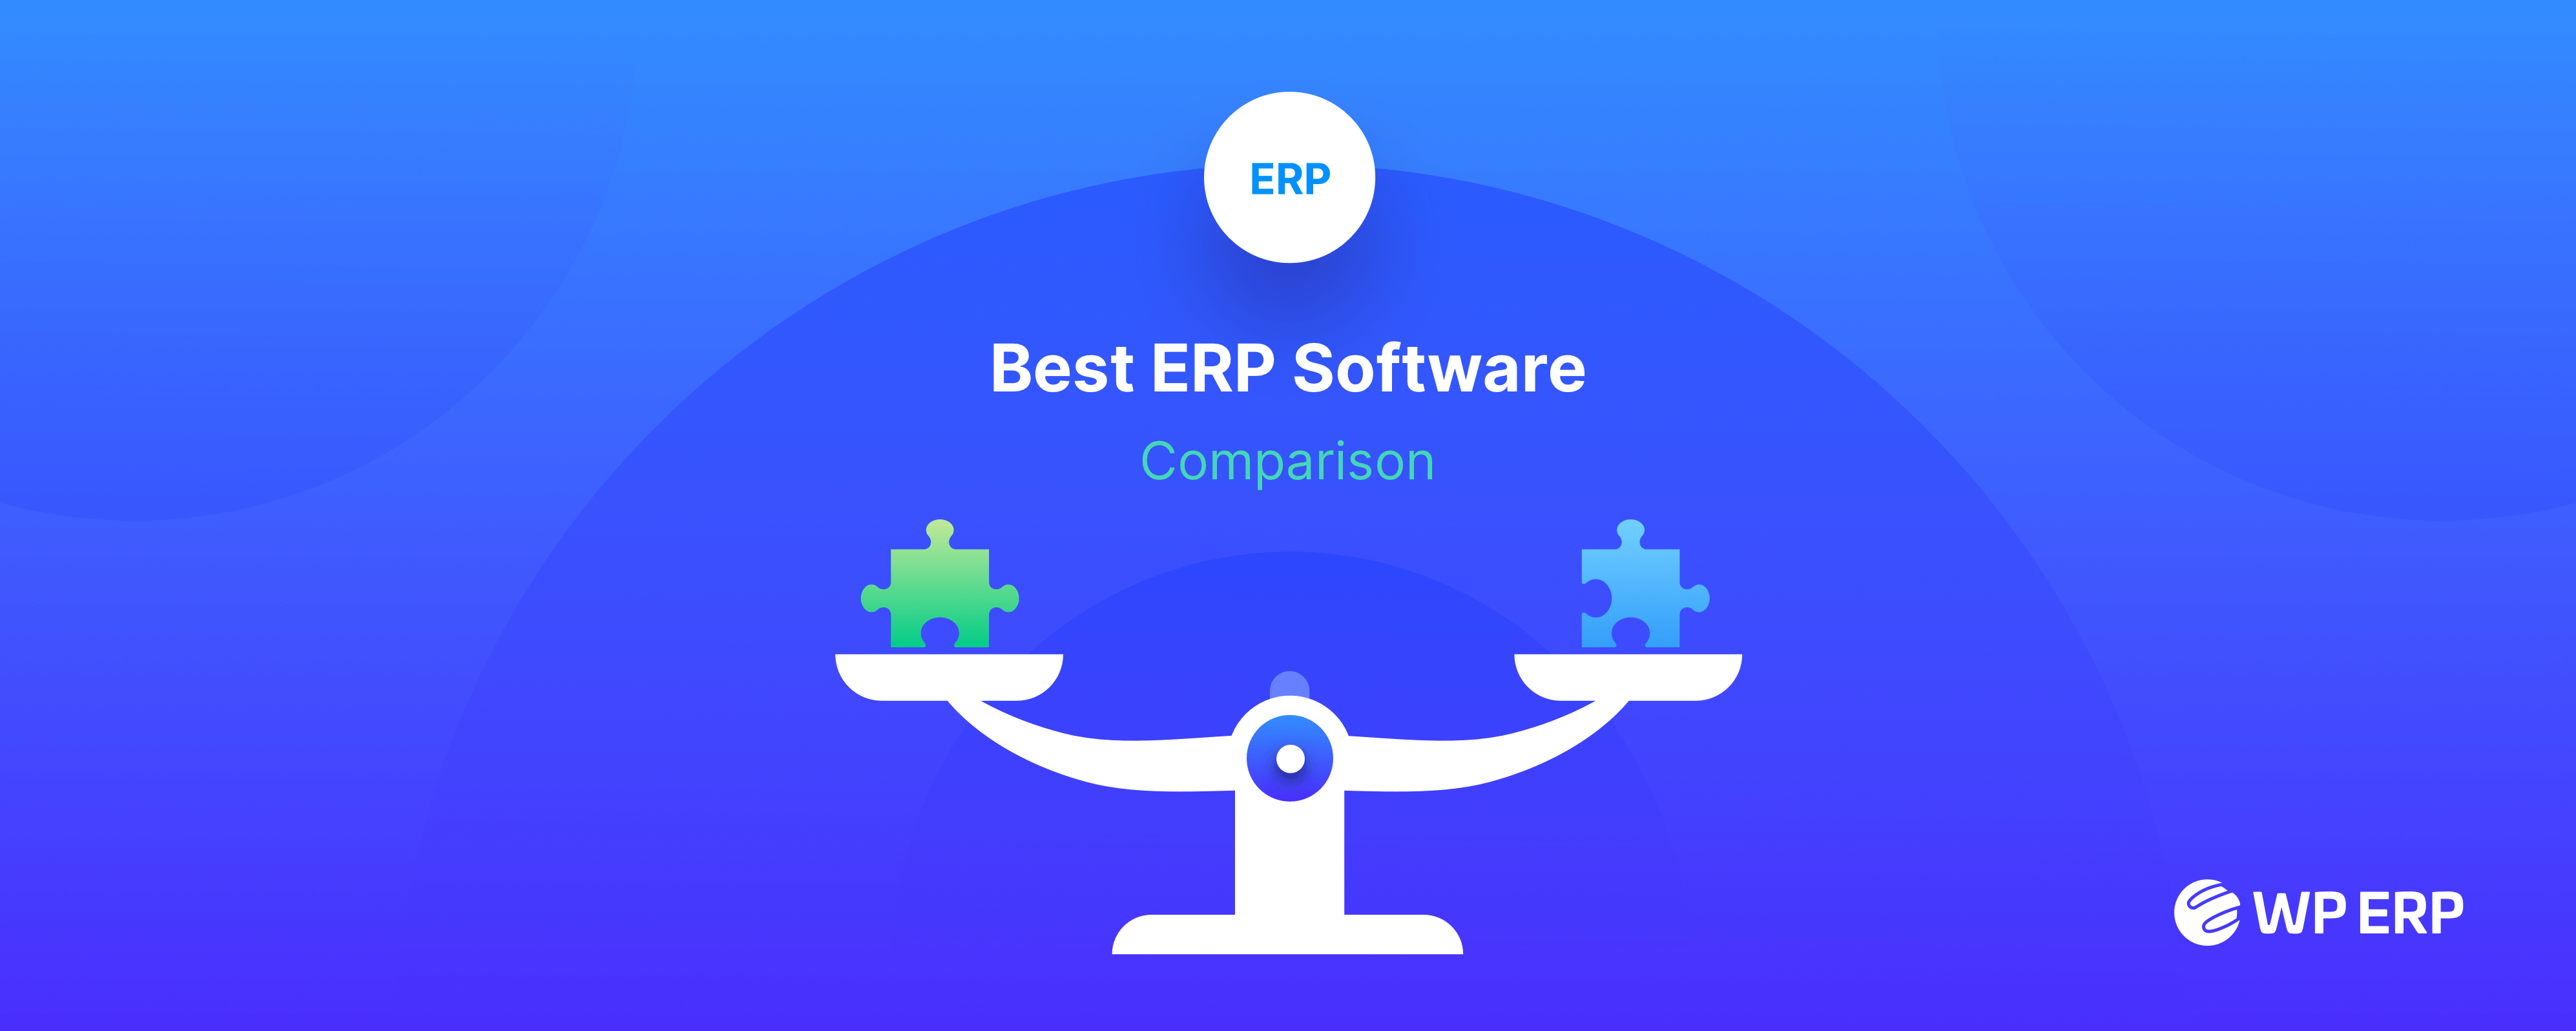 Best Enterprise Resource Planning Software Comparison